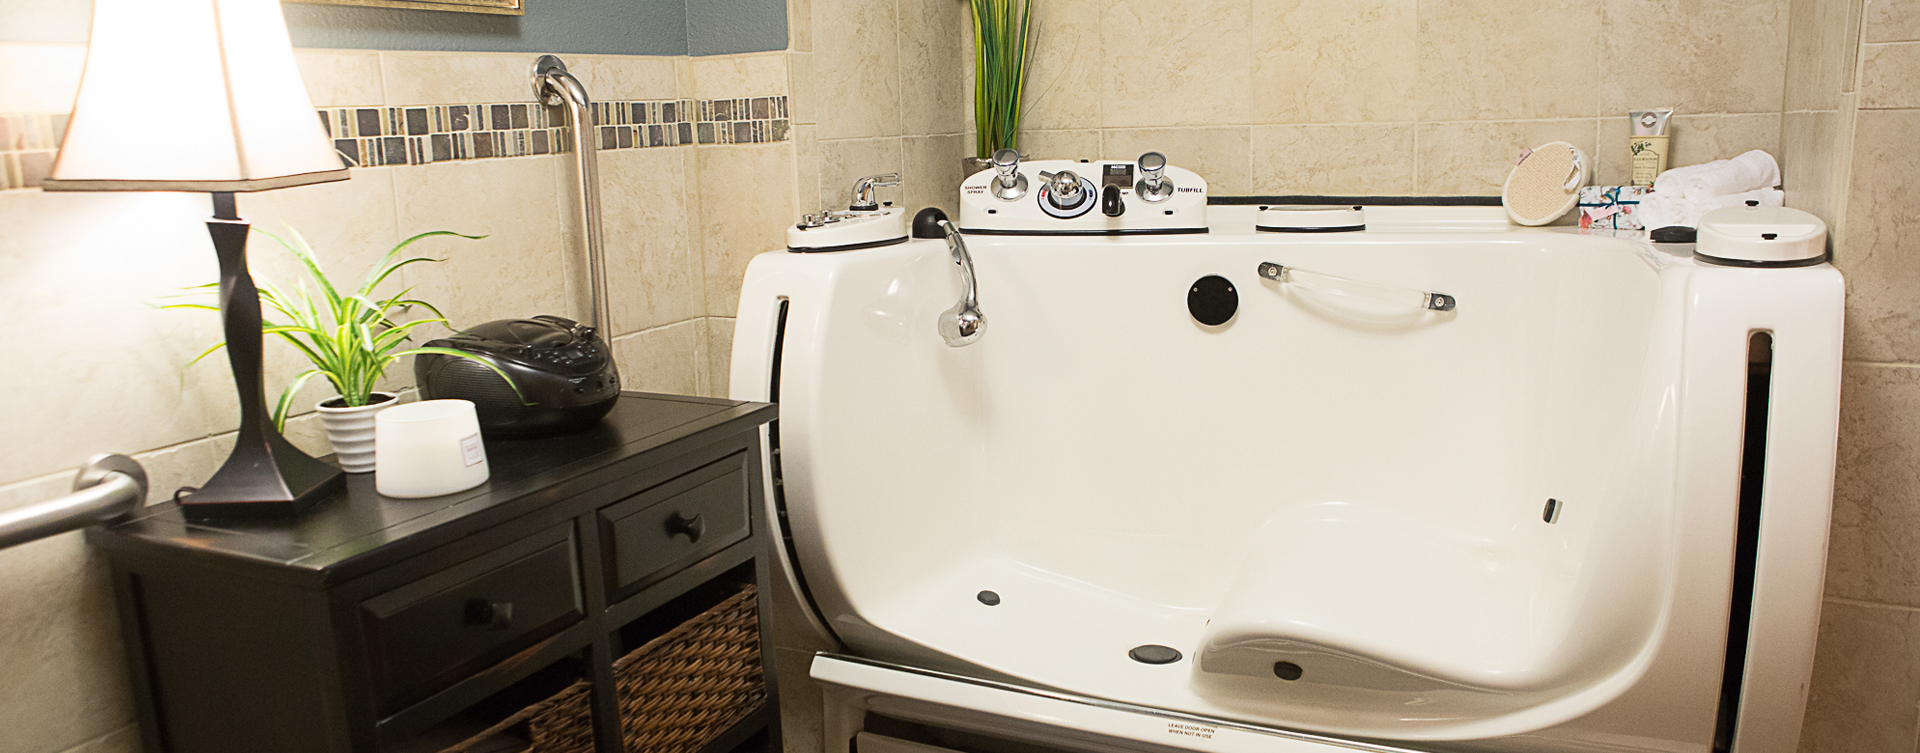 With an easy access design, our whirlpool allows you to enjoy a warm bath safely and comfortably at Bickford of Clinton